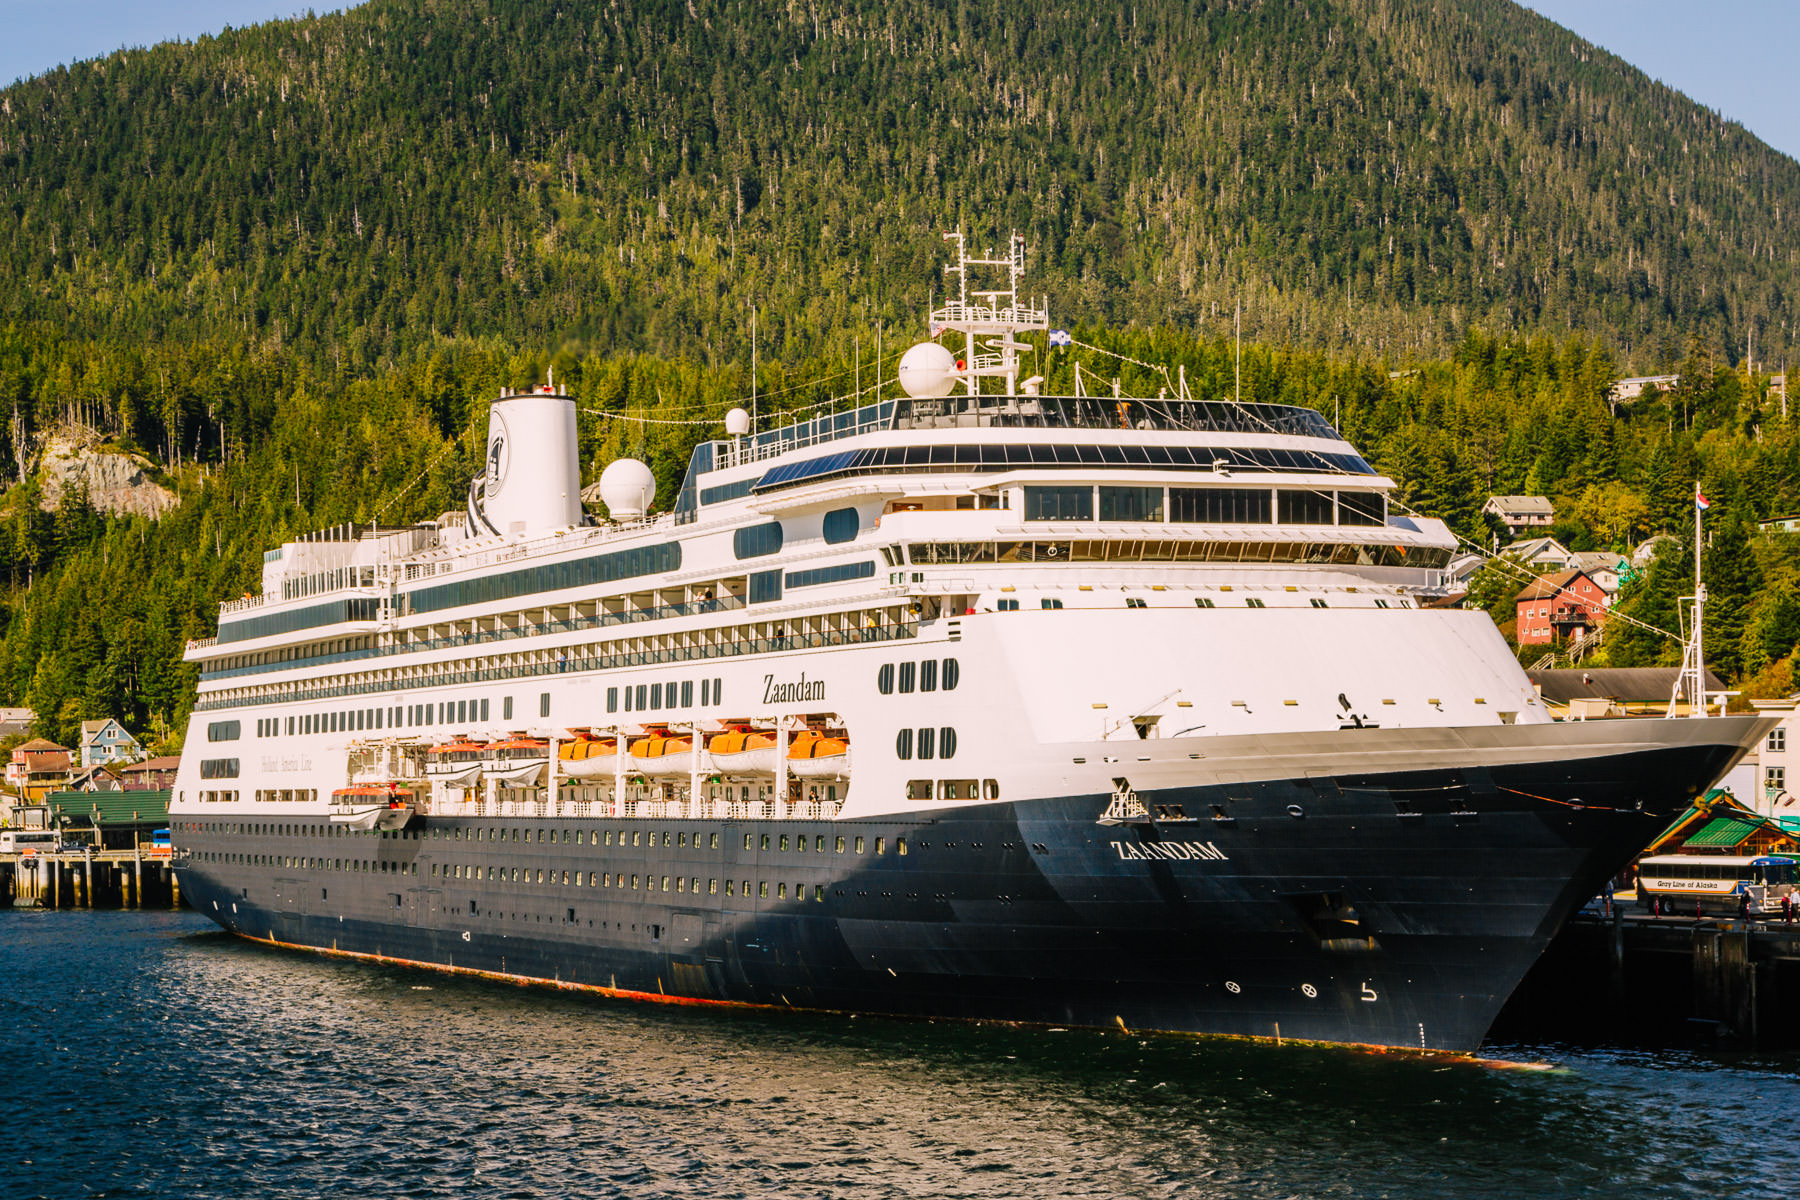 The Holland America Line cruise ship MS Zaandam docked at the cruise ship pier at Ketchikan, Alaska.